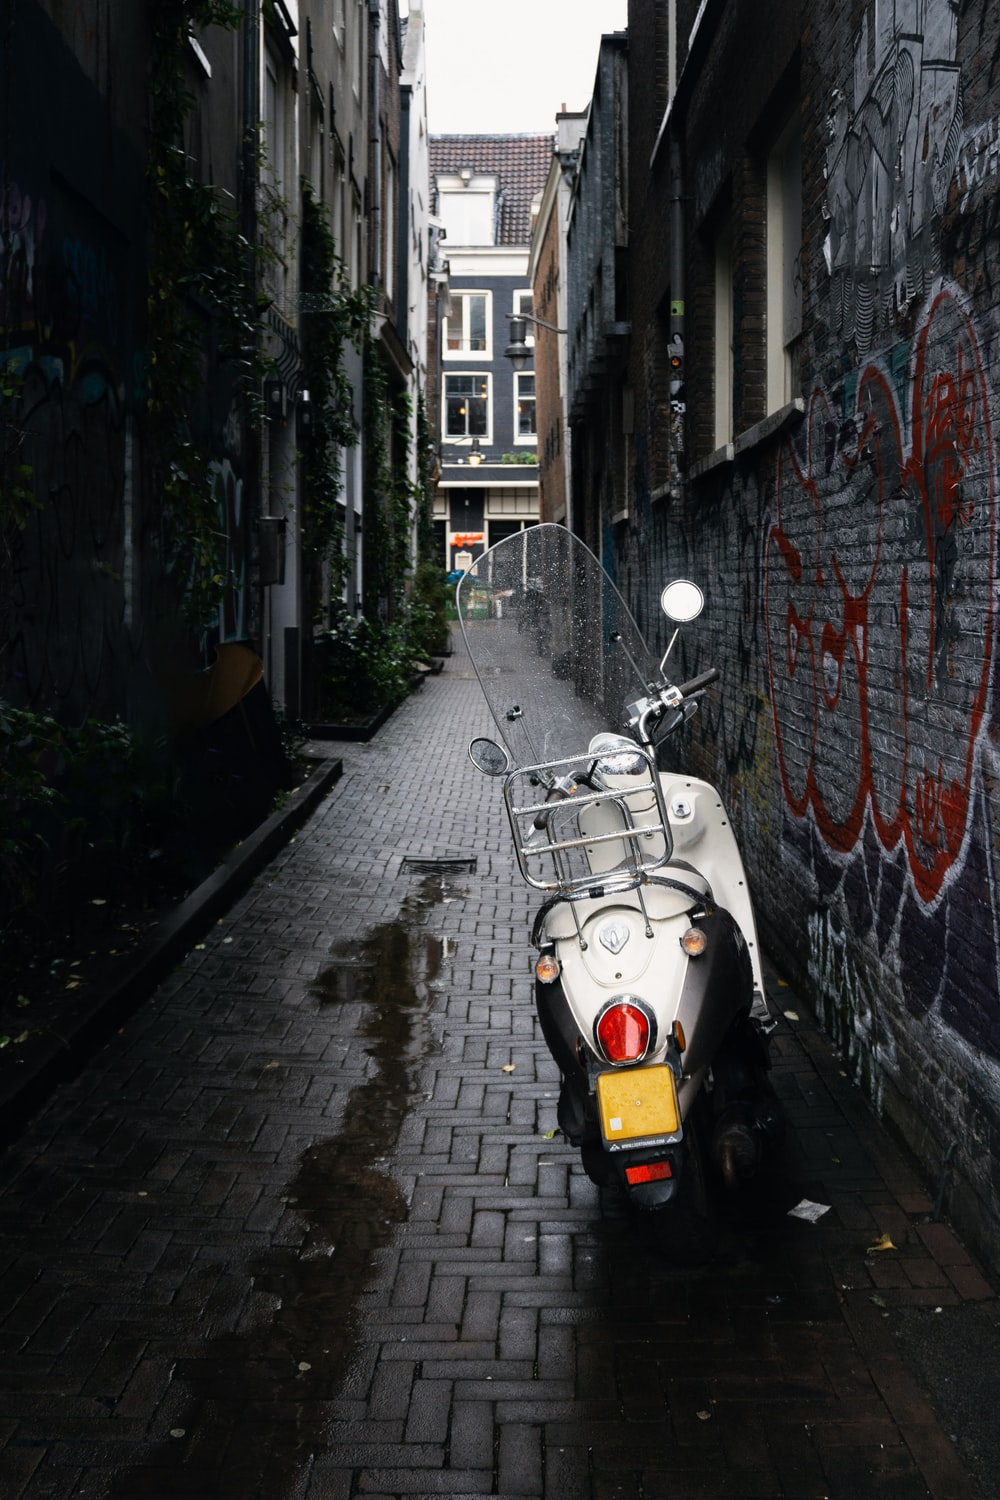 white motor scooter parked beside concrete building during daytime